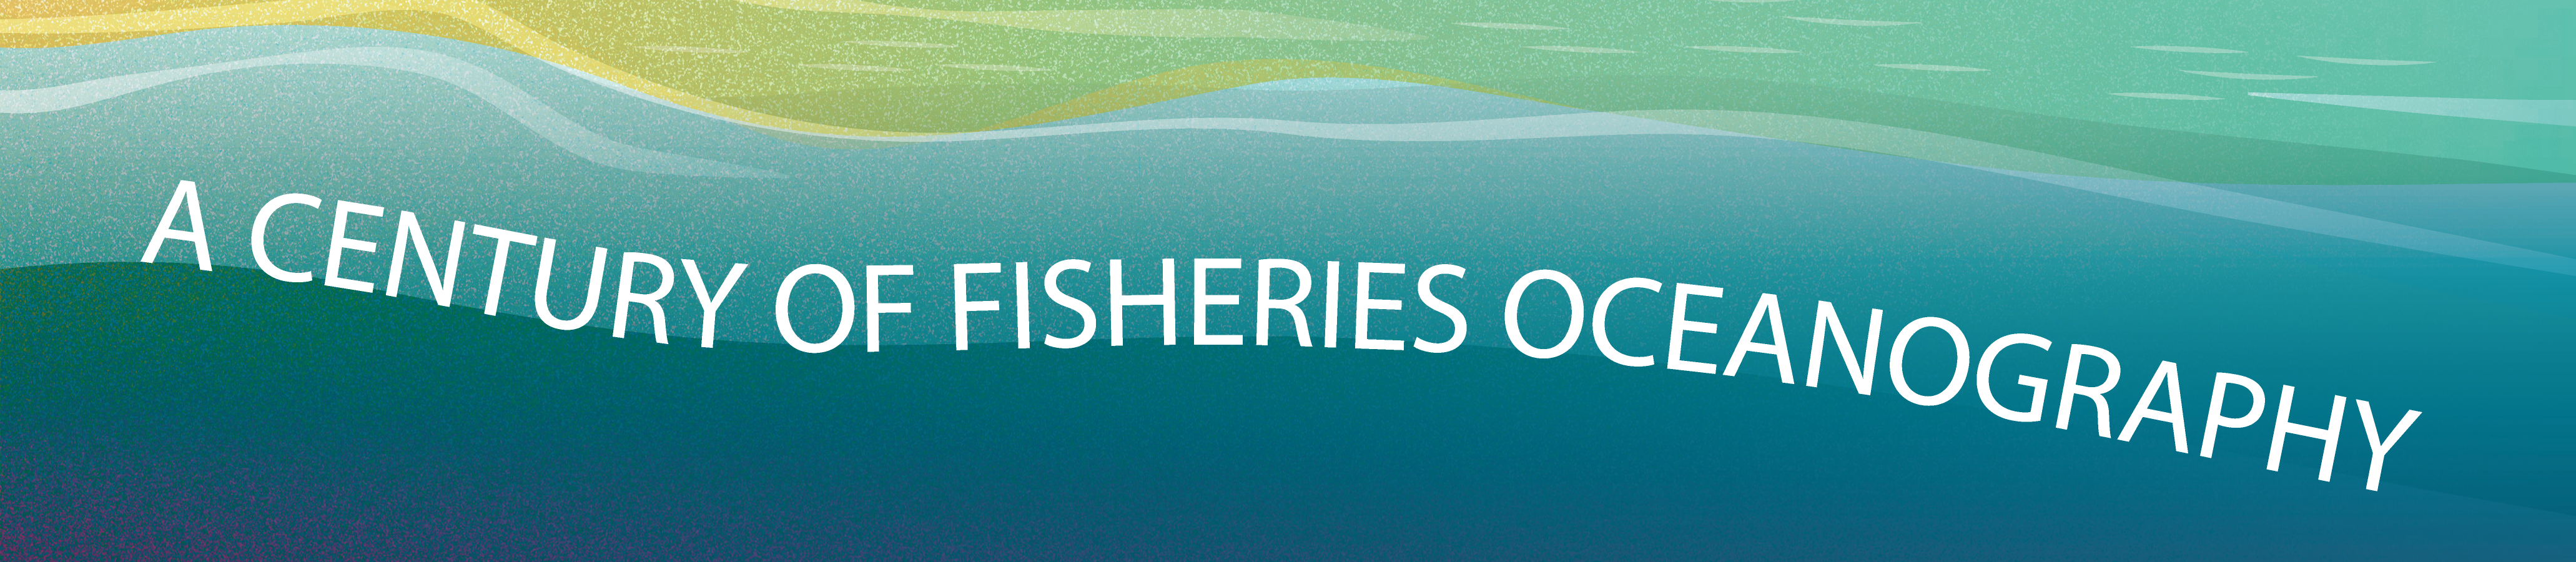 101 Years of Fisheries Oceanography Tools